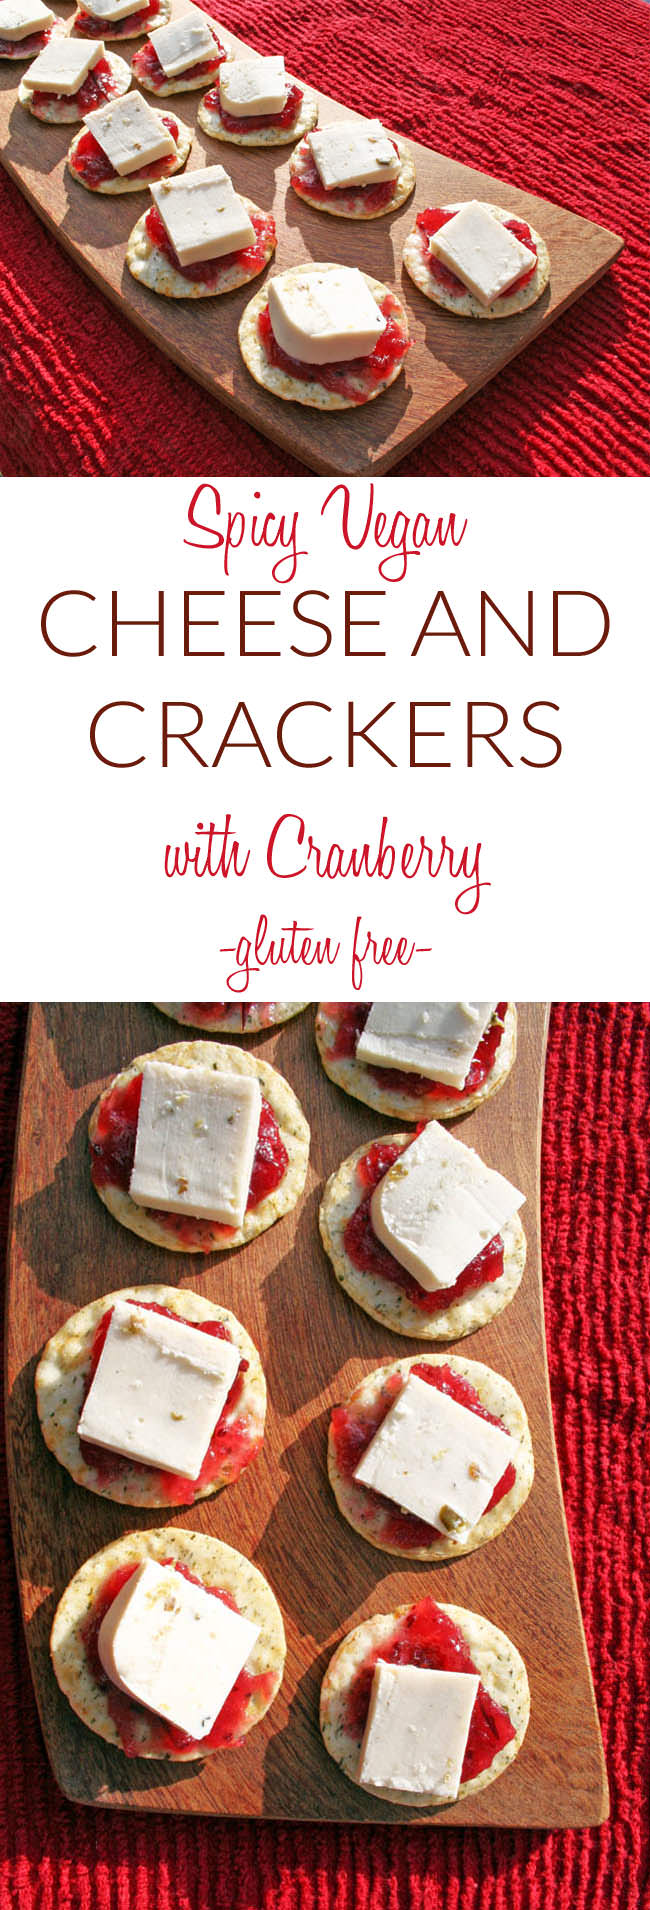 Spicy Vegan Cheese and Crackers long photo pin for Pinterest with two photos and text in between.